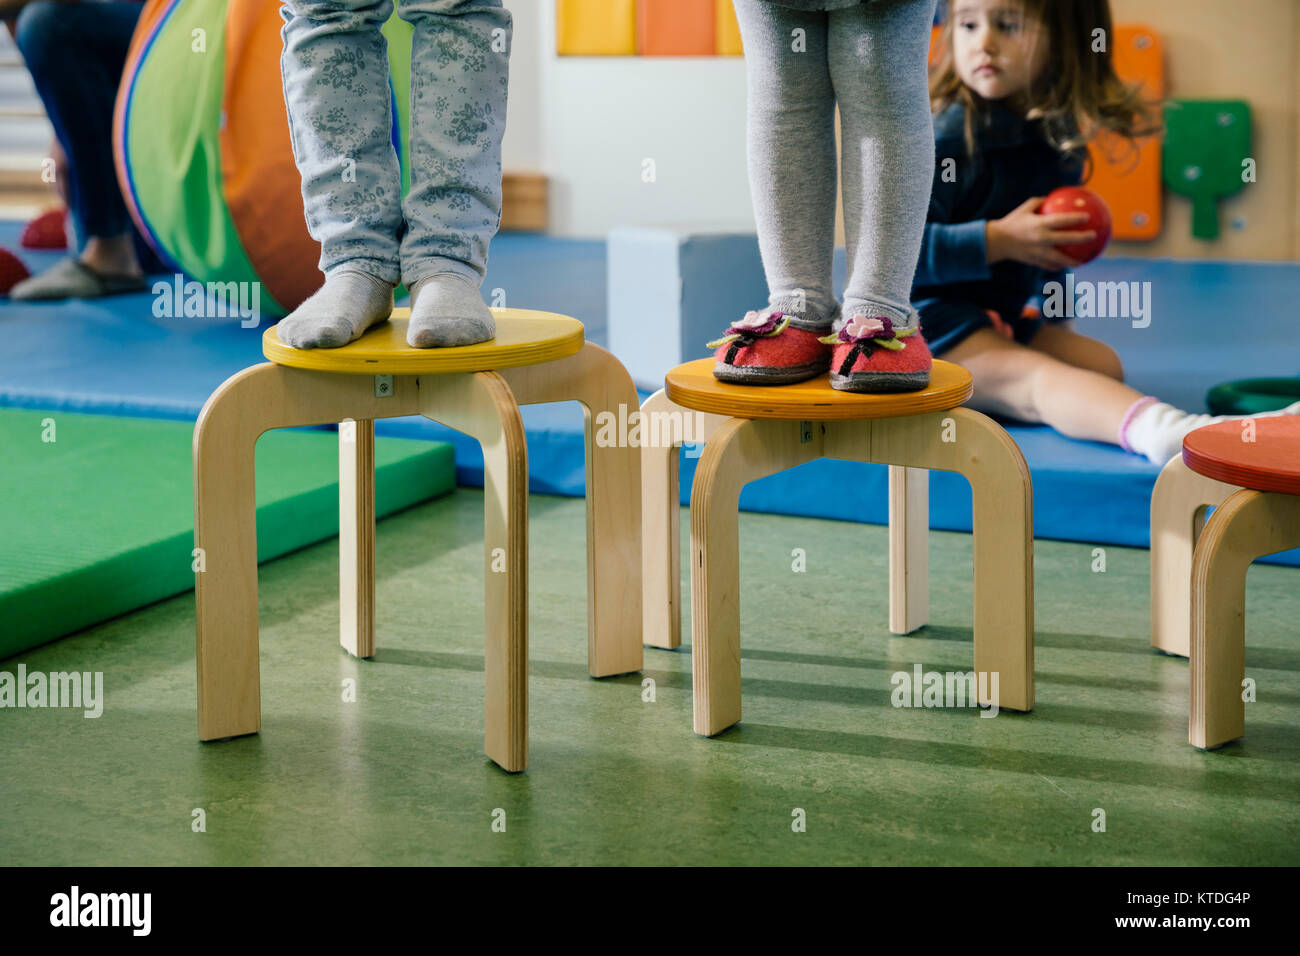 Feet of two children standing on chairs of different heights in kindergarten  sc 1 st  Alamy & Feet of two children standing on chairs of different heights in ...